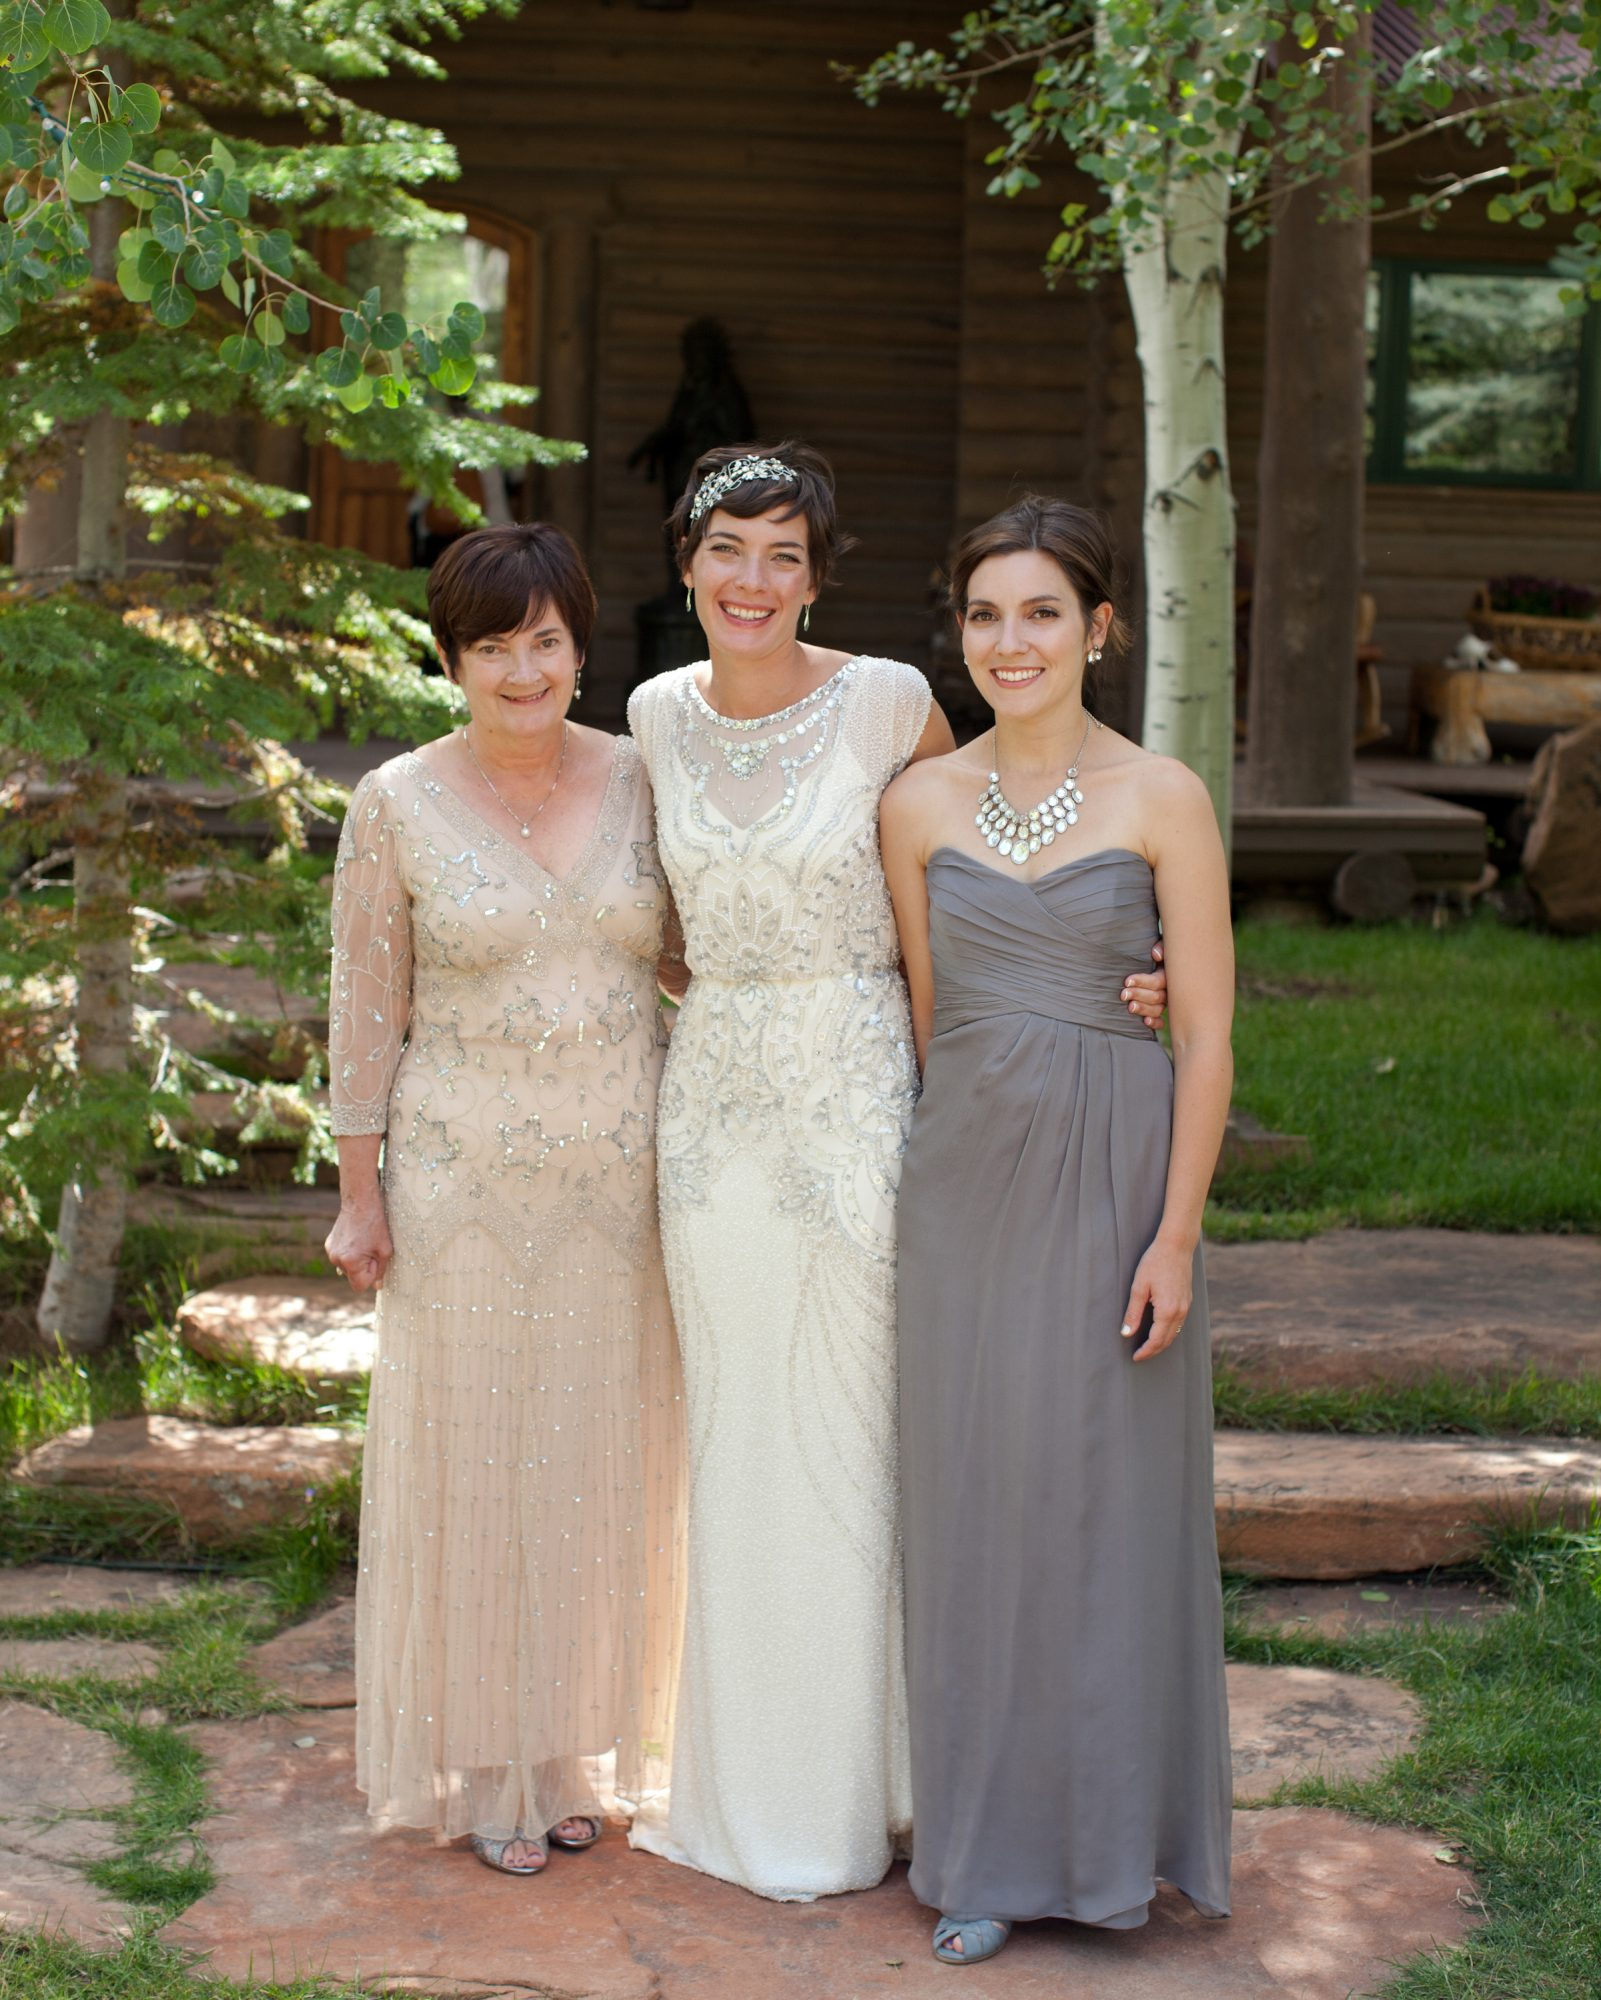 Should moms' outfits coordinate with the color palette and groomsmen and bridesmaid attire?